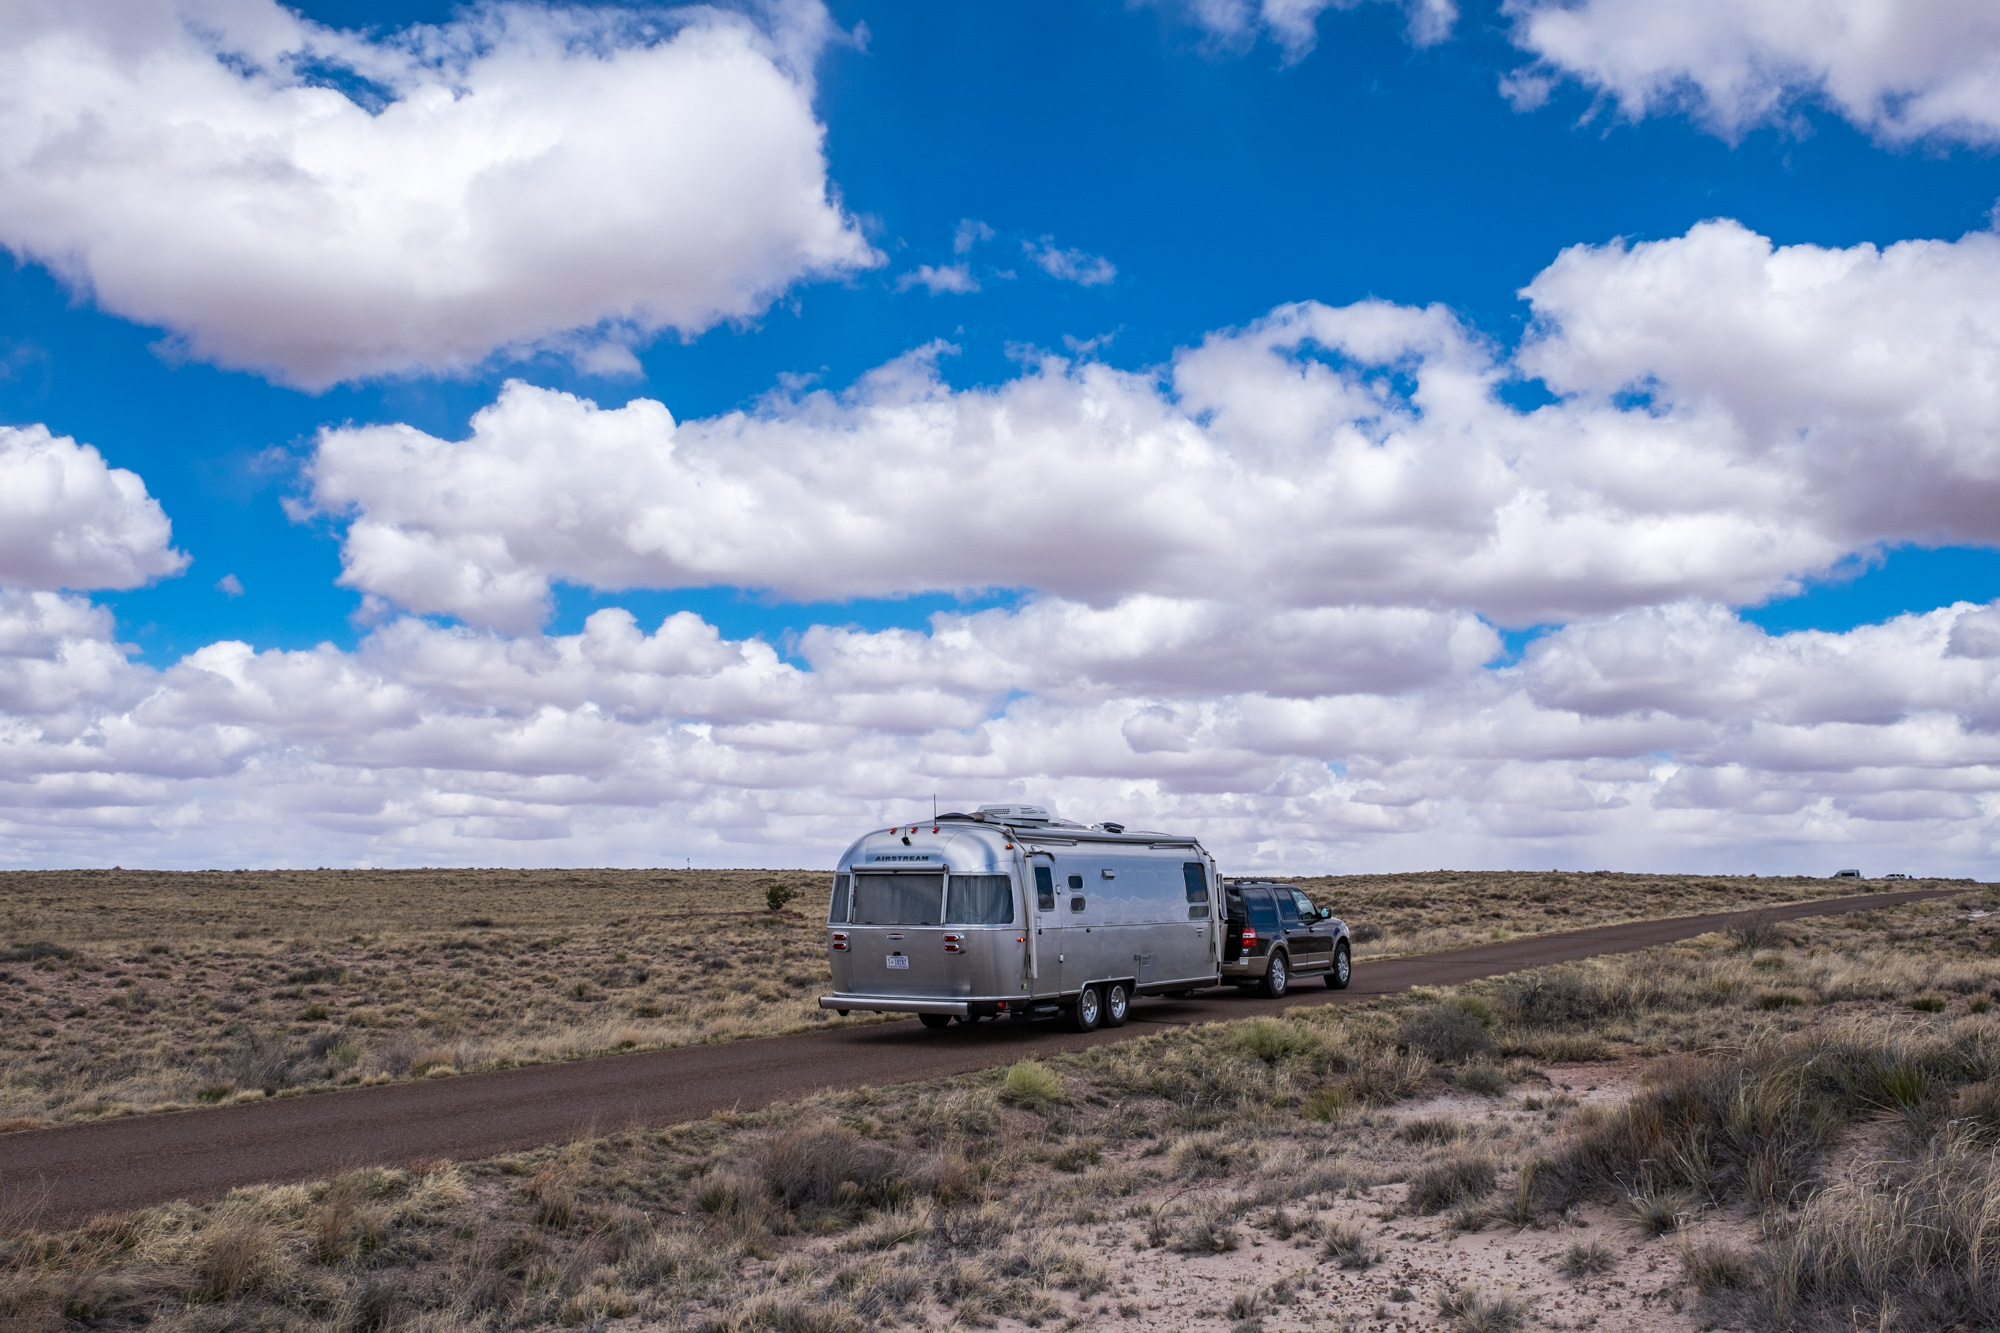 Wally liked the big sky views of Petrified Forest.